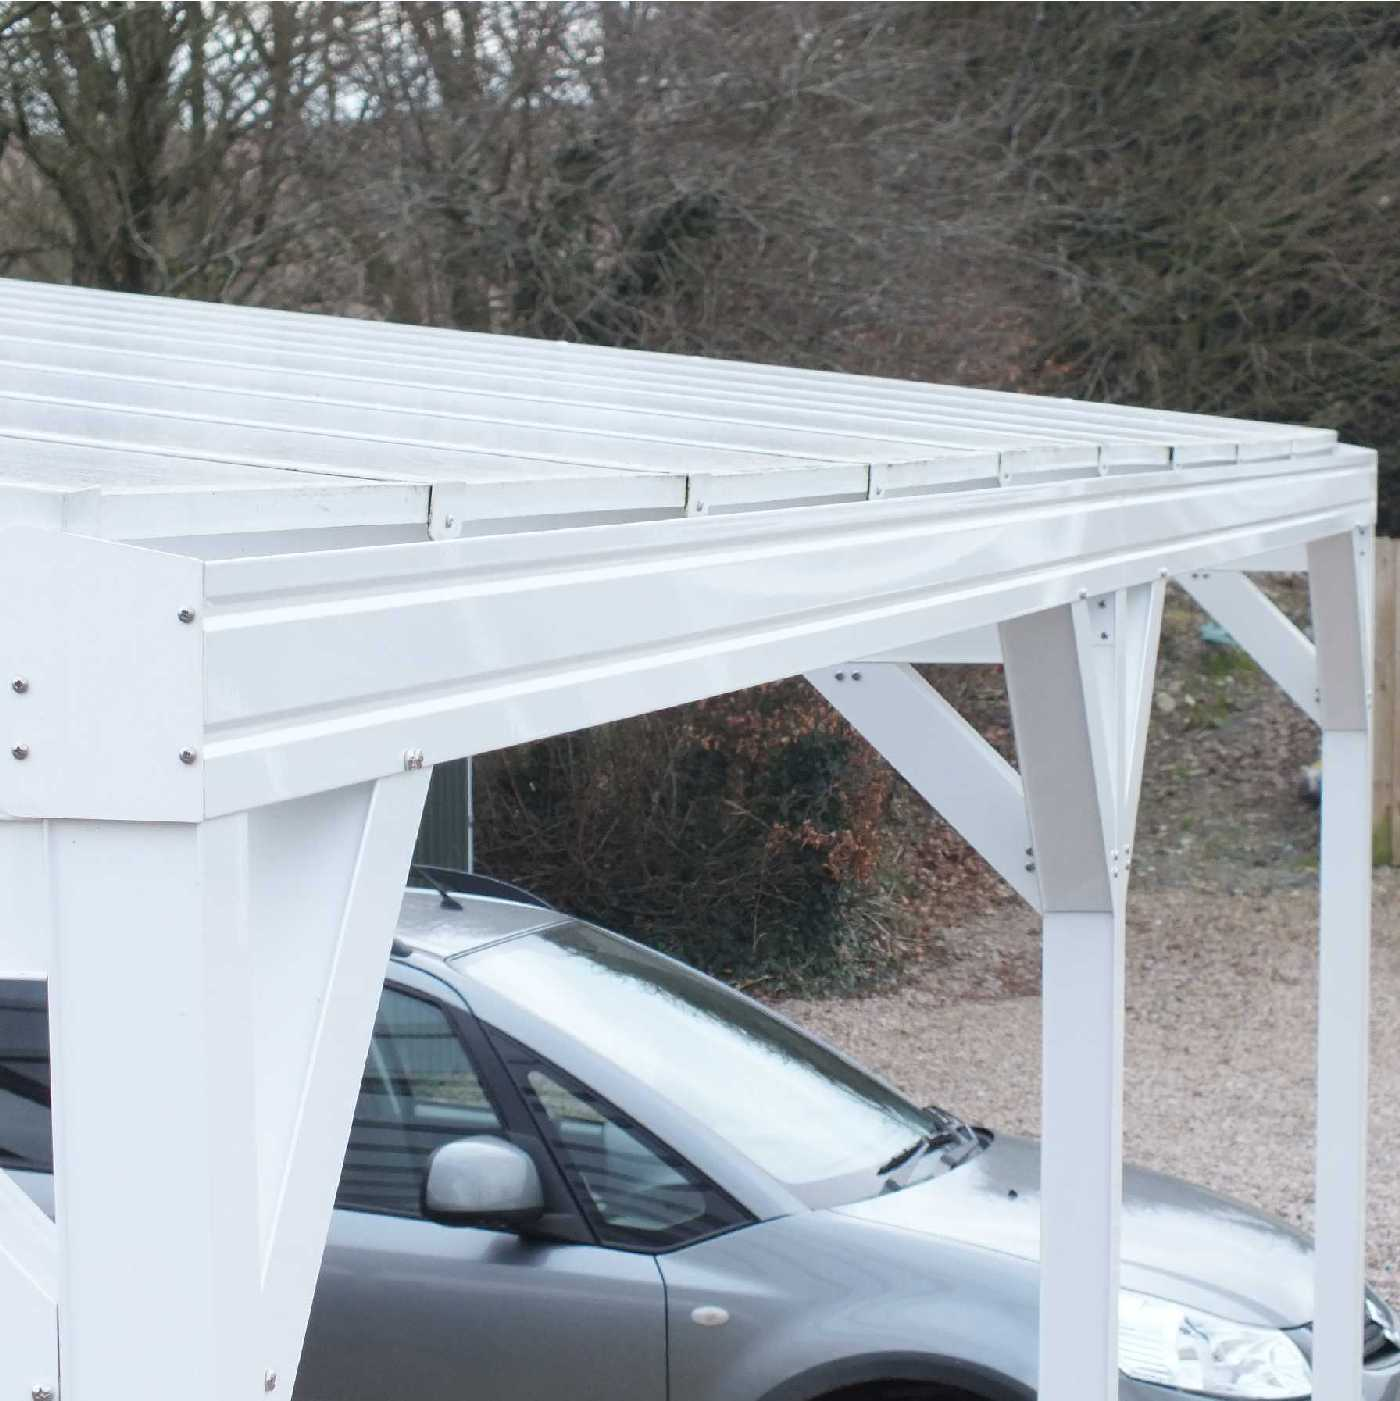 Omega Smart Free-Standing, MonoPitch Roof Canopy with 16mm Polycarbonate Glazing - 4.2m (W) x 2.0m (P), (6) Supporting Posts from Omega Build